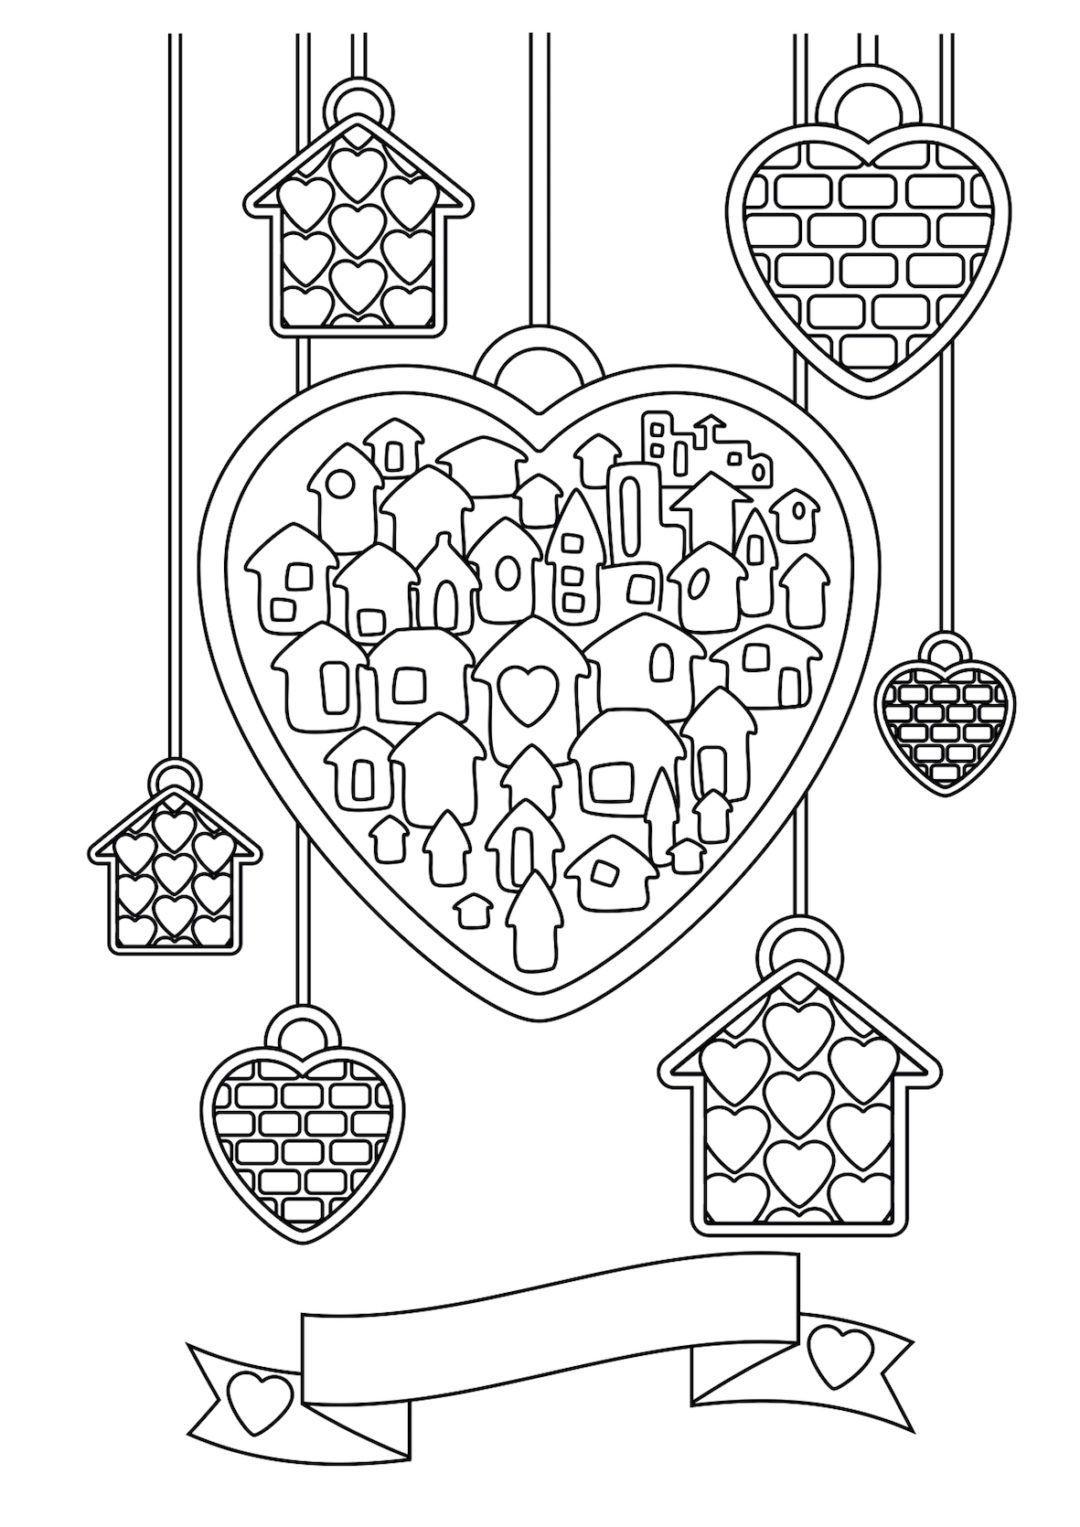 heart dream catcher coloring pages heart dream catcher coloring pages thekidsworksheet coloring heart dream pages catcher